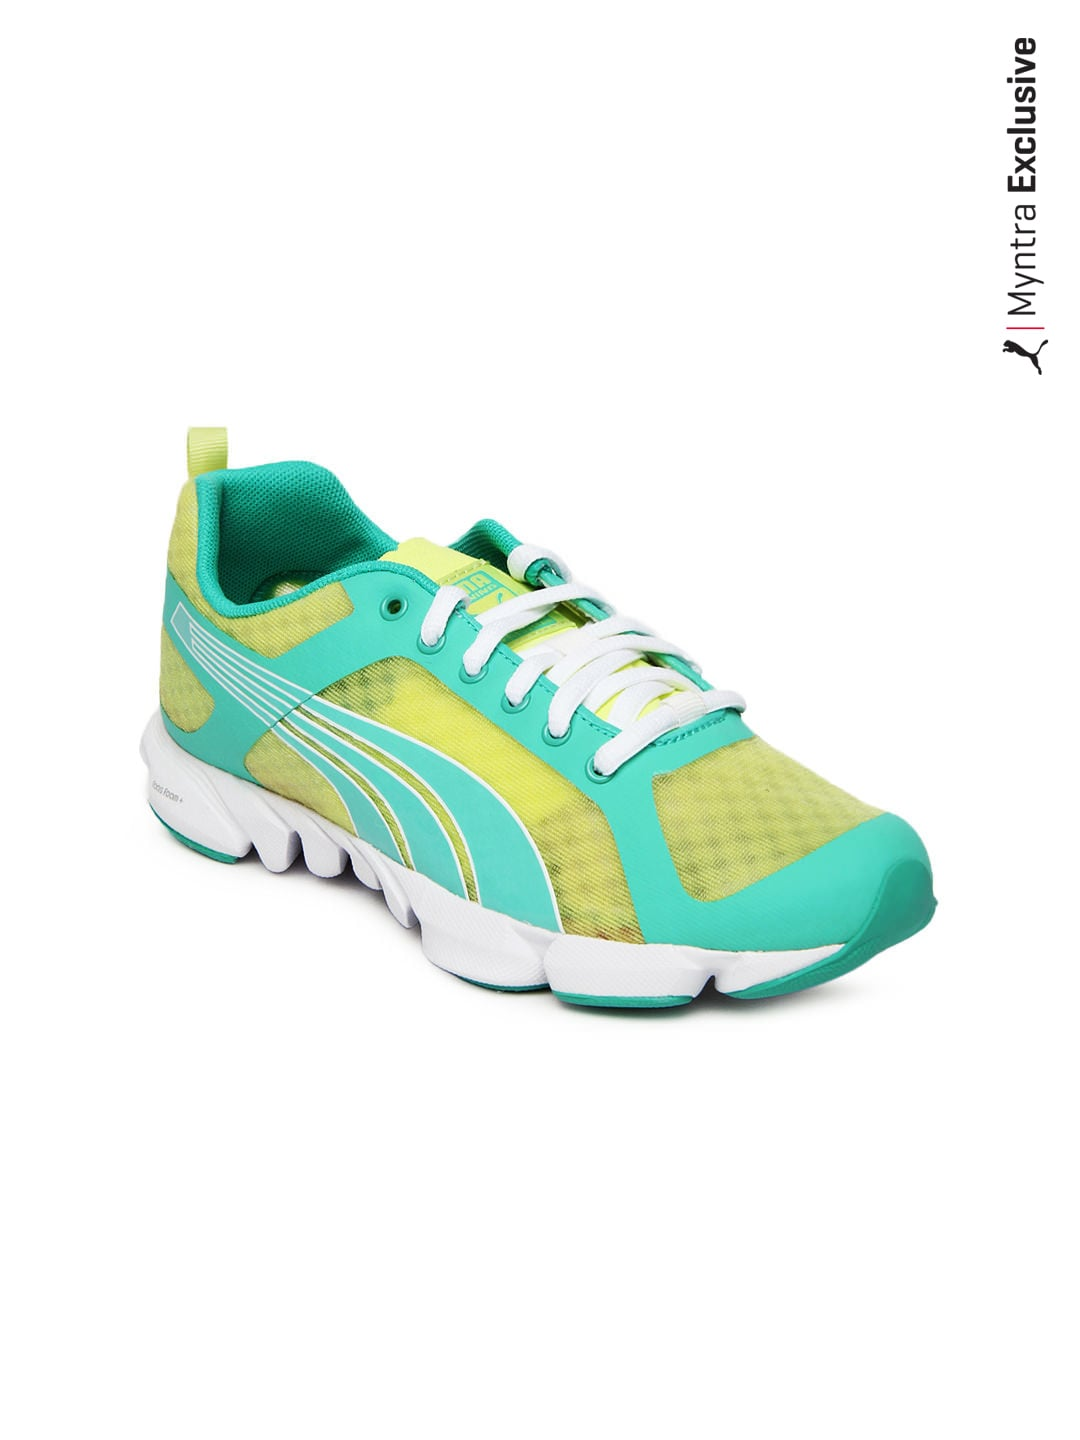 Cheap brand name shoes online Cheap shoes online